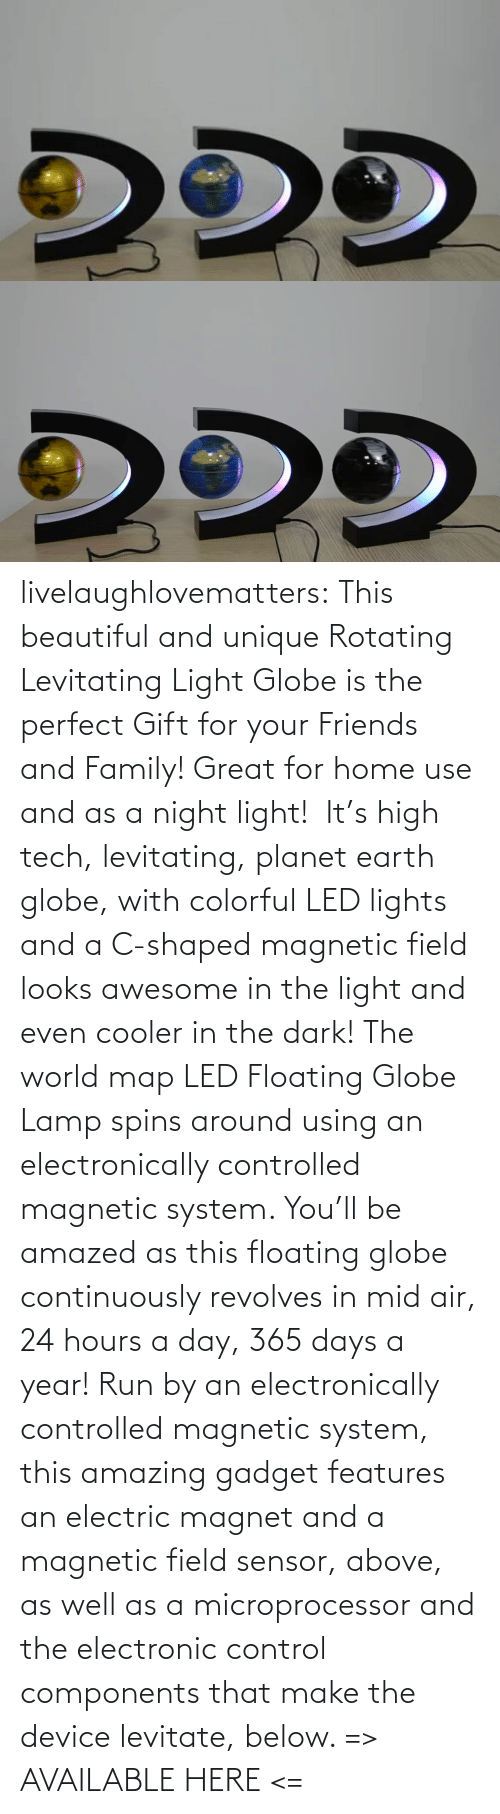 system: livelaughlovematters: This beautiful and unique Rotating Levitating Light Globe is the perfect Gift for your Friends and Family! Great for home use and as a night light!  It's high tech, levitating, planet earth globe, with colorful LED lights and a C-shaped magnetic field looks awesome in the light and even cooler in the dark! The world map LED Floating Globe Lamp spins around using an electronically controlled magnetic system.  You'll be amazed as this floating globe continuously revolves in mid air, 24 hours a day, 365 days a year! Run by an electronically controlled magnetic system, this amazing gadget features an electric magnet and a magnetic field sensor, above, as well as a microprocessor and the electronic control components that make the device levitate, below.  => AVAILABLE HERE <=